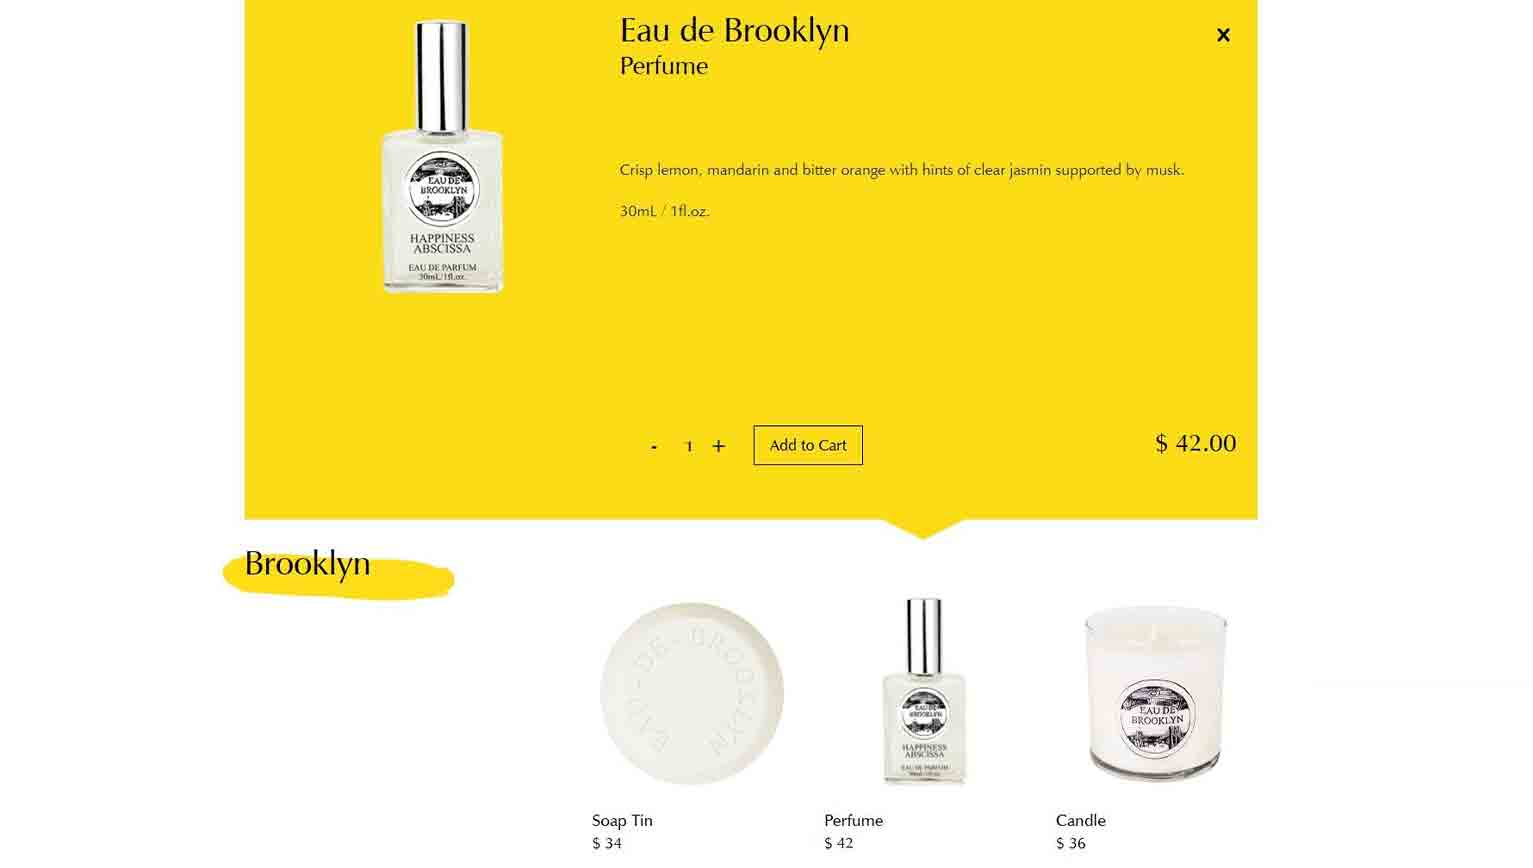 Lifestyle brand Happiness Abscissa lets customers click an item and view the product description on the same page.